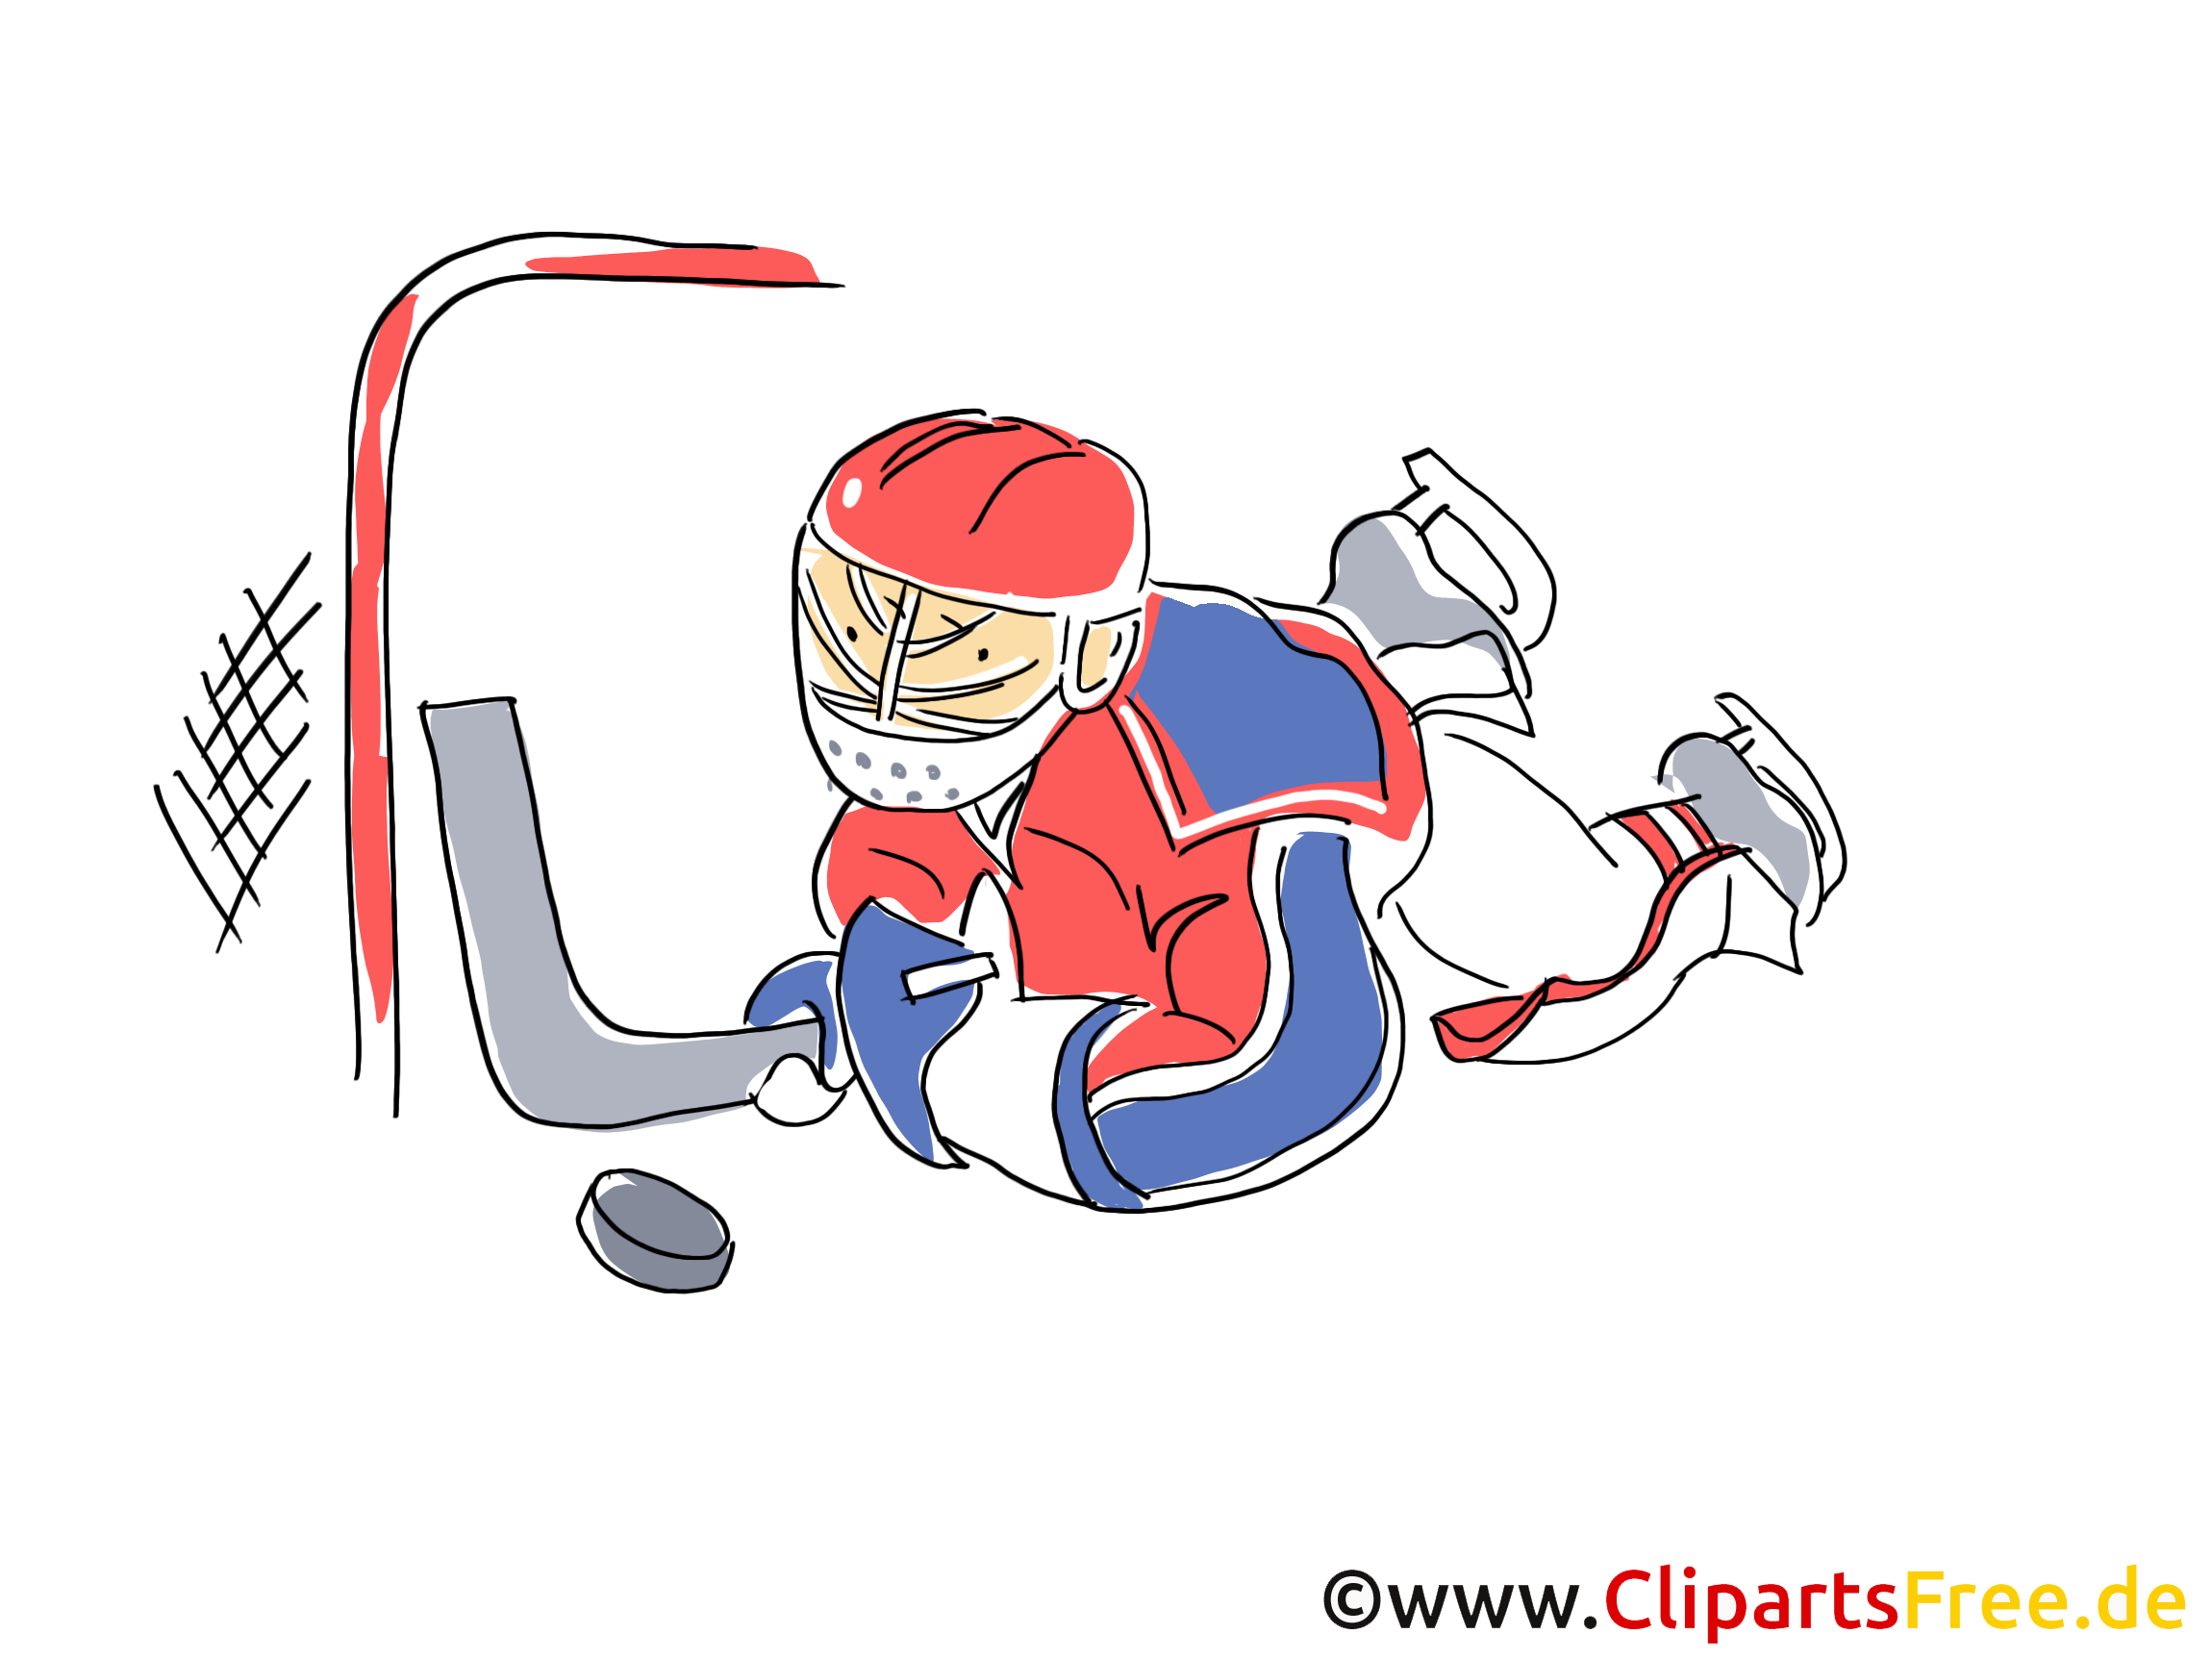 Attacke Eishockey Bild, Illustration, Clipart, Comic, Cartoon gratis